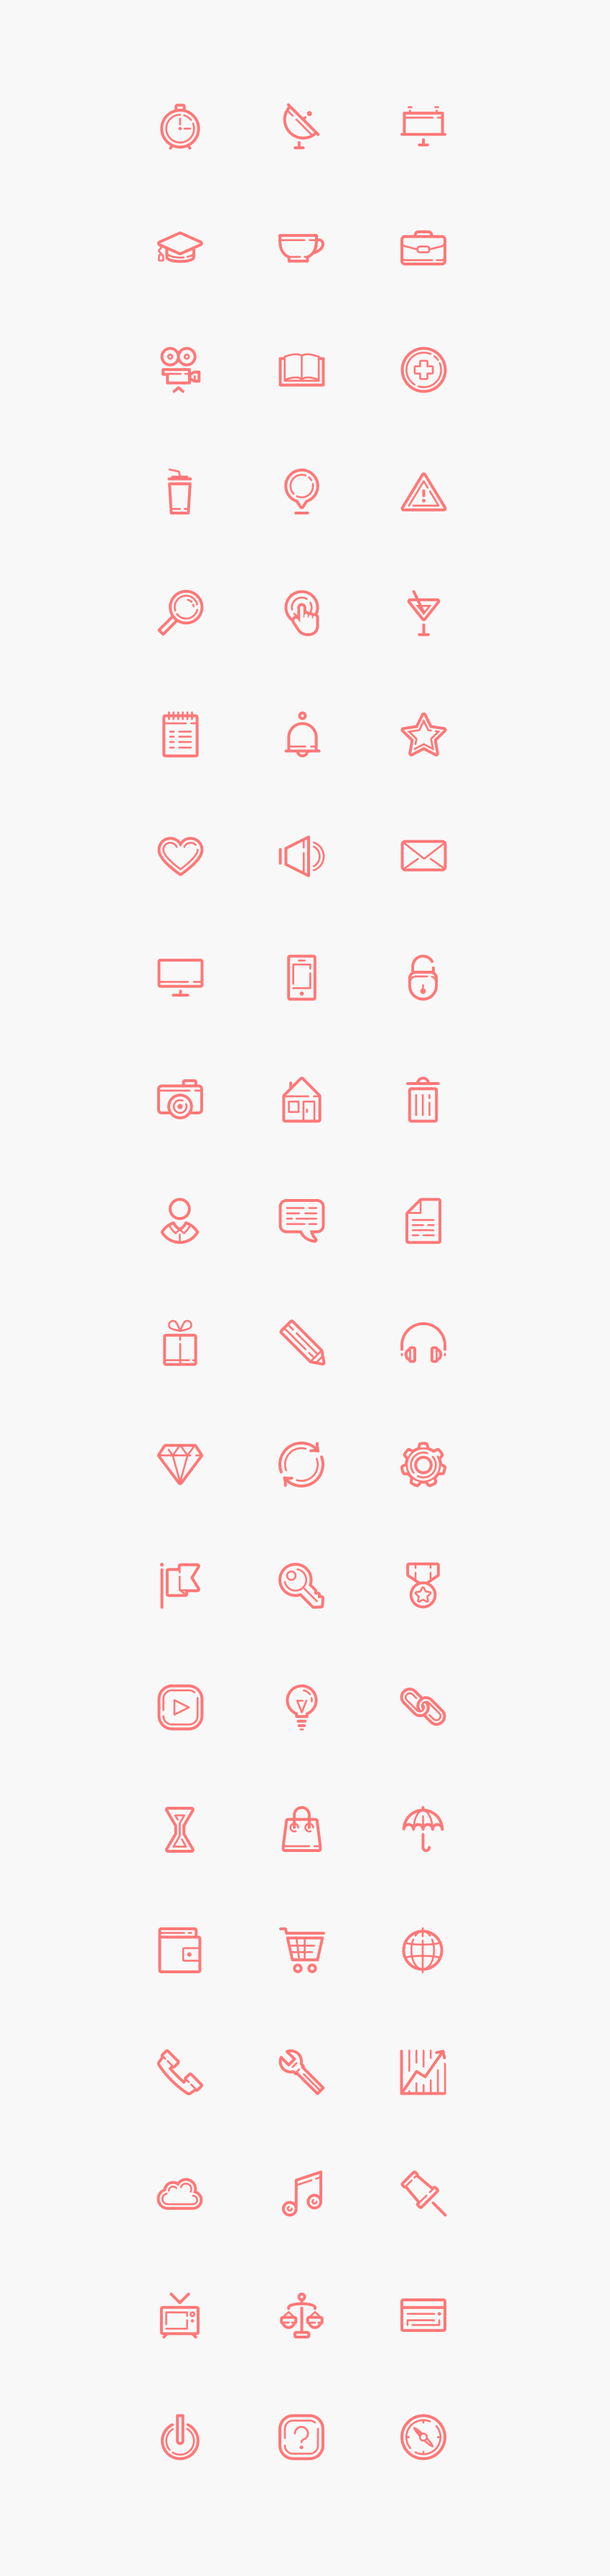 60 Free Clean Outline Icons for Photoshop and Illustrator